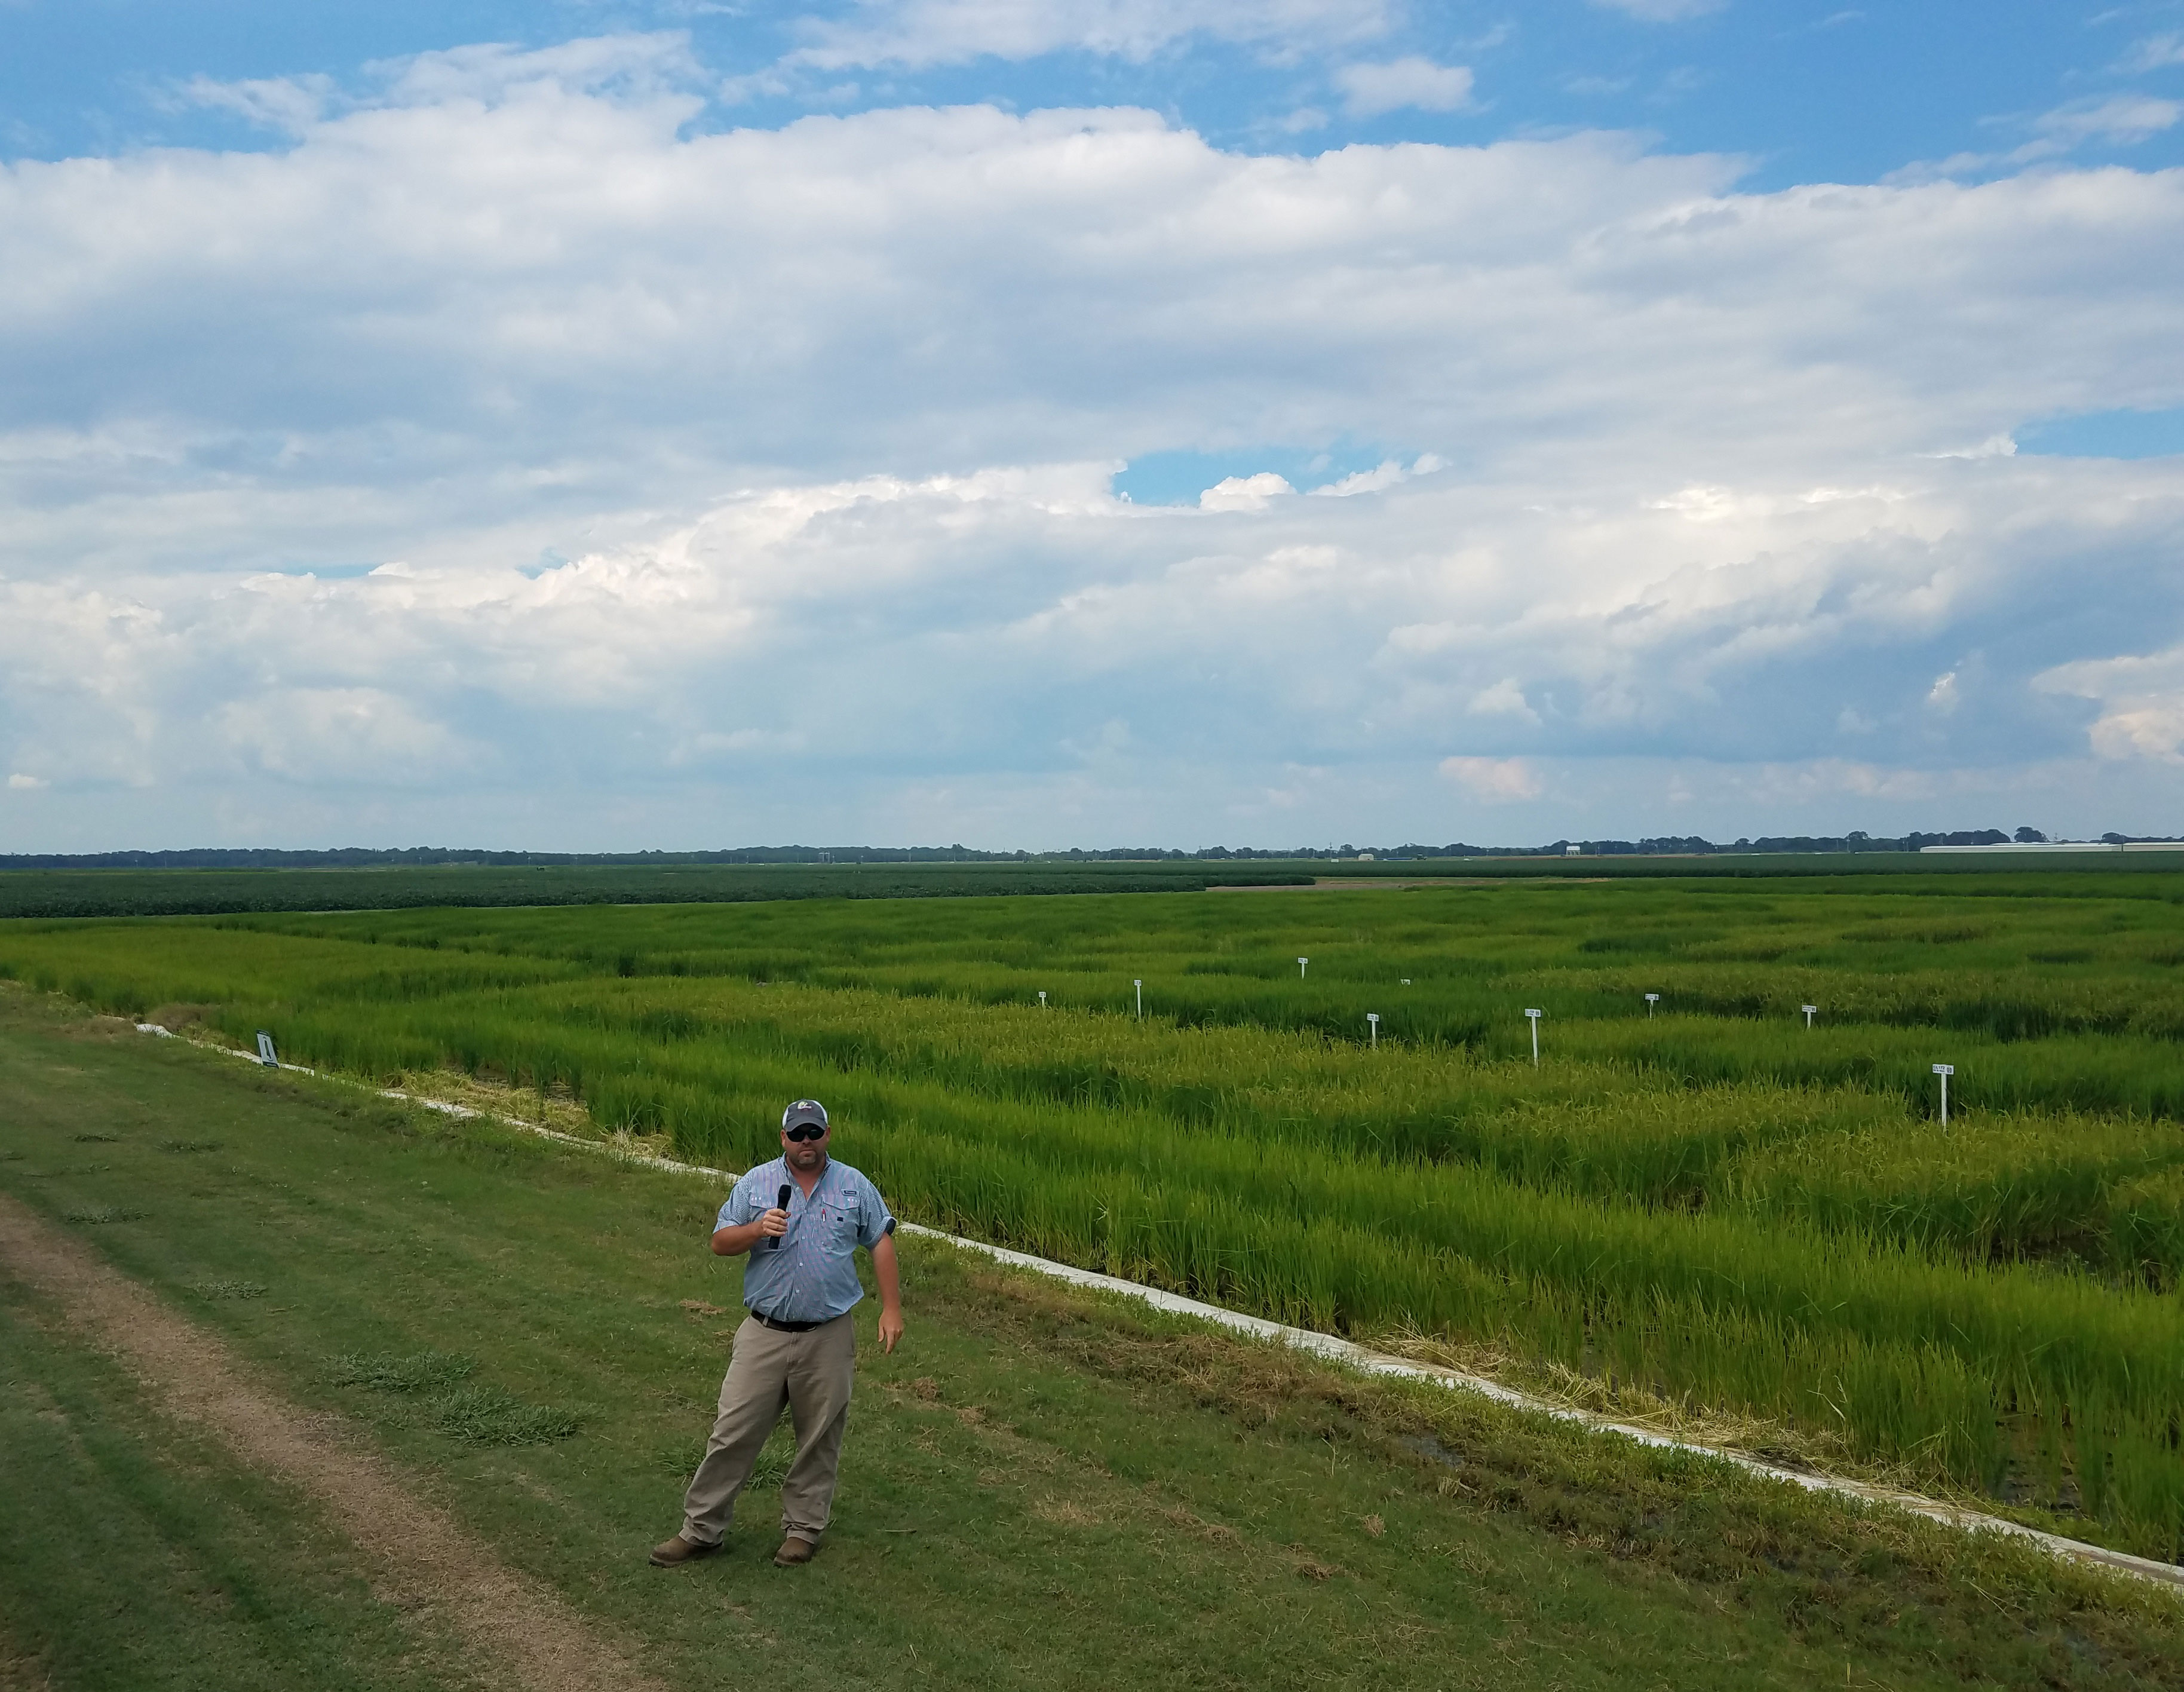 Researcher holding microphone next to rice research plot